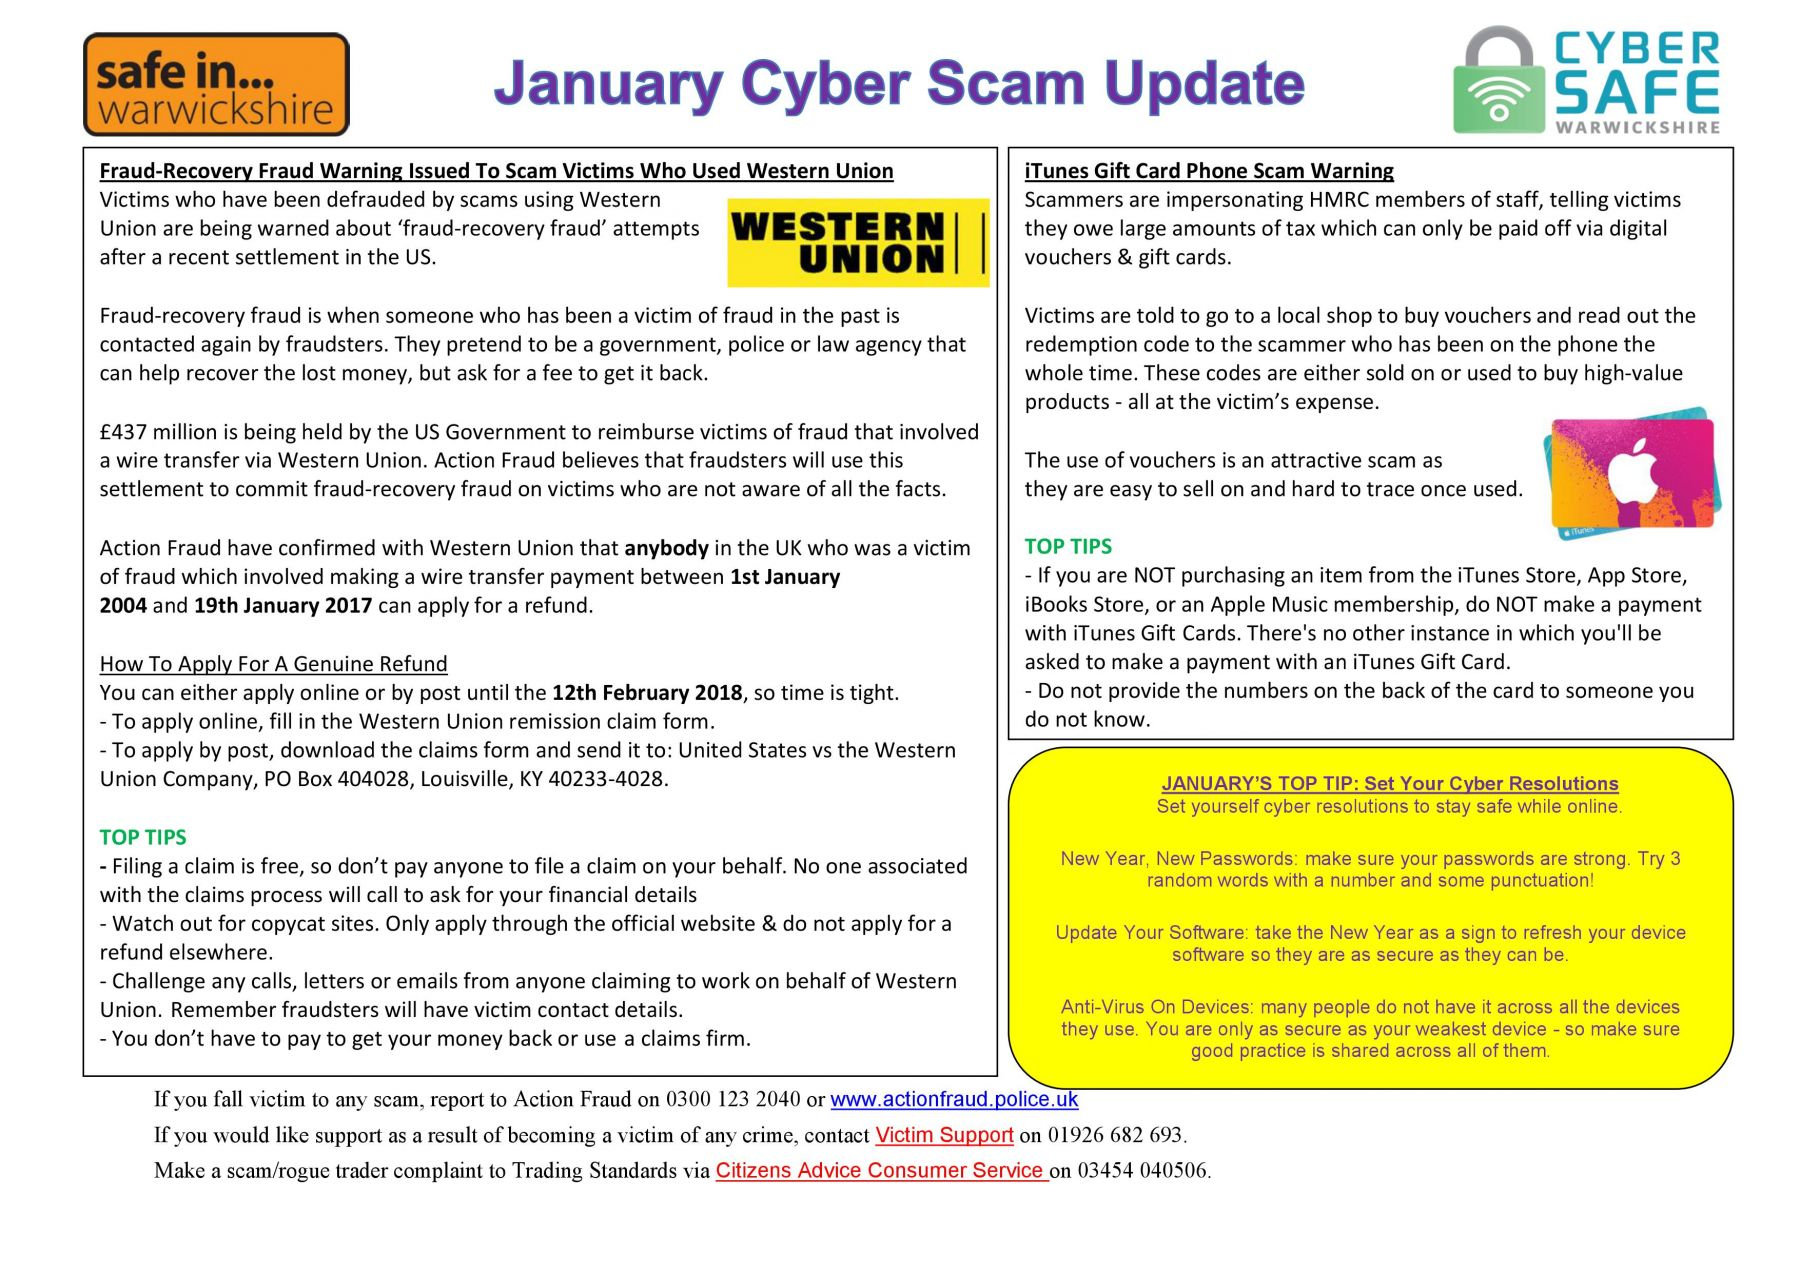 Cyber Safe Warwickshire - January Cyber Scam Update Now LIVE